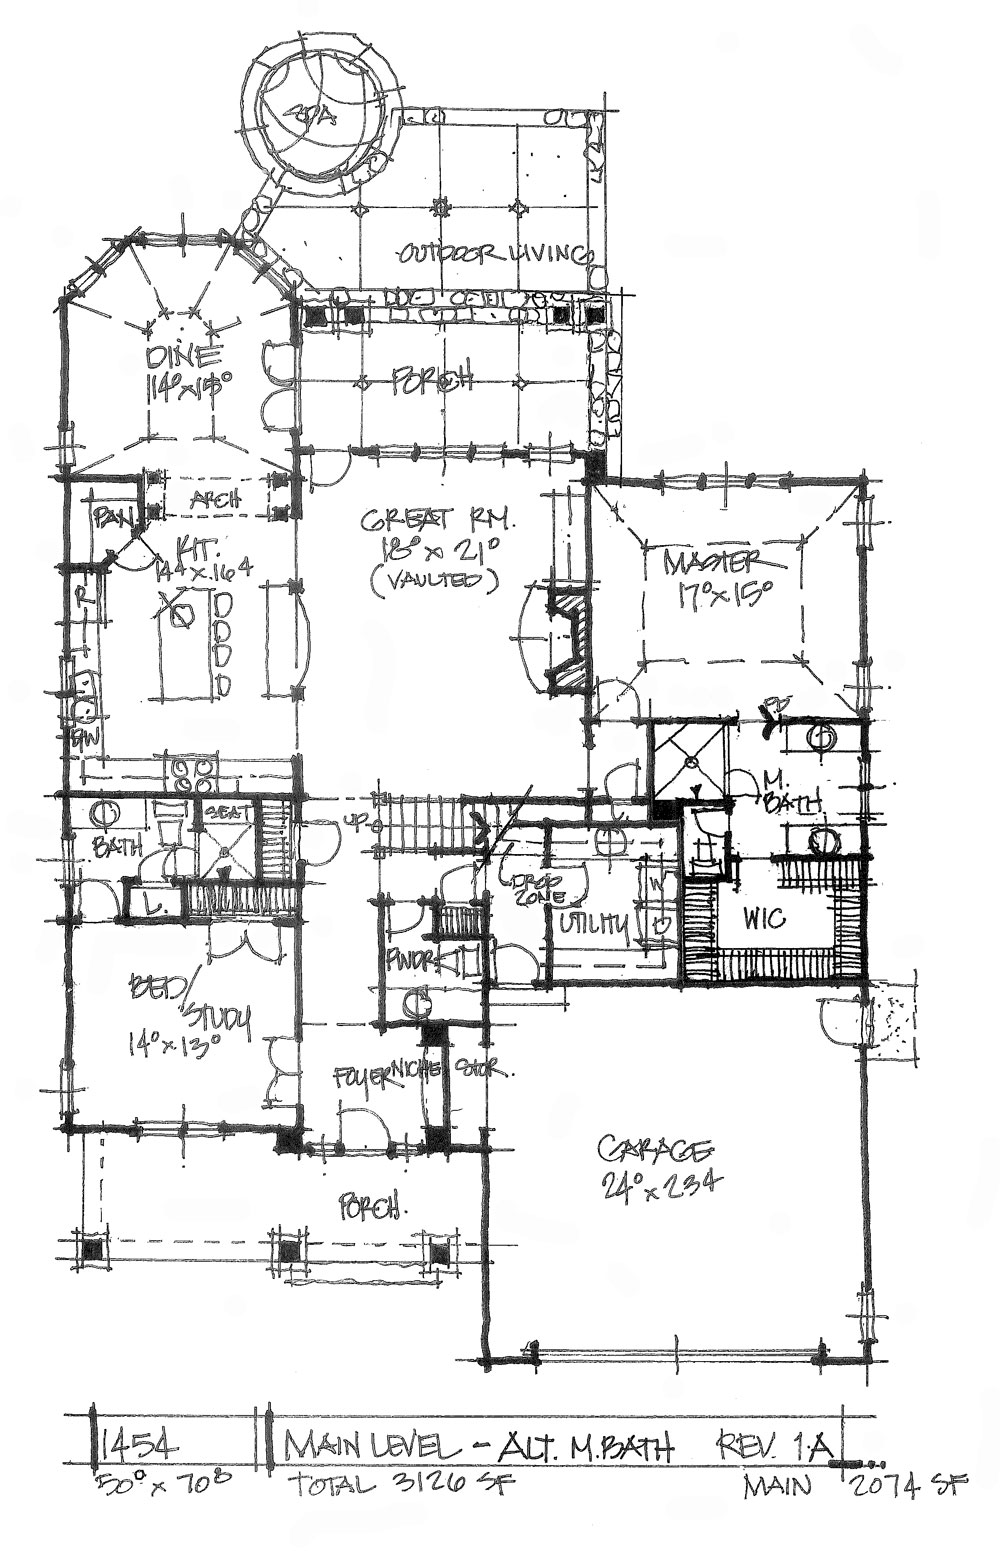 Check out the first floor alternative for house plan 1454.